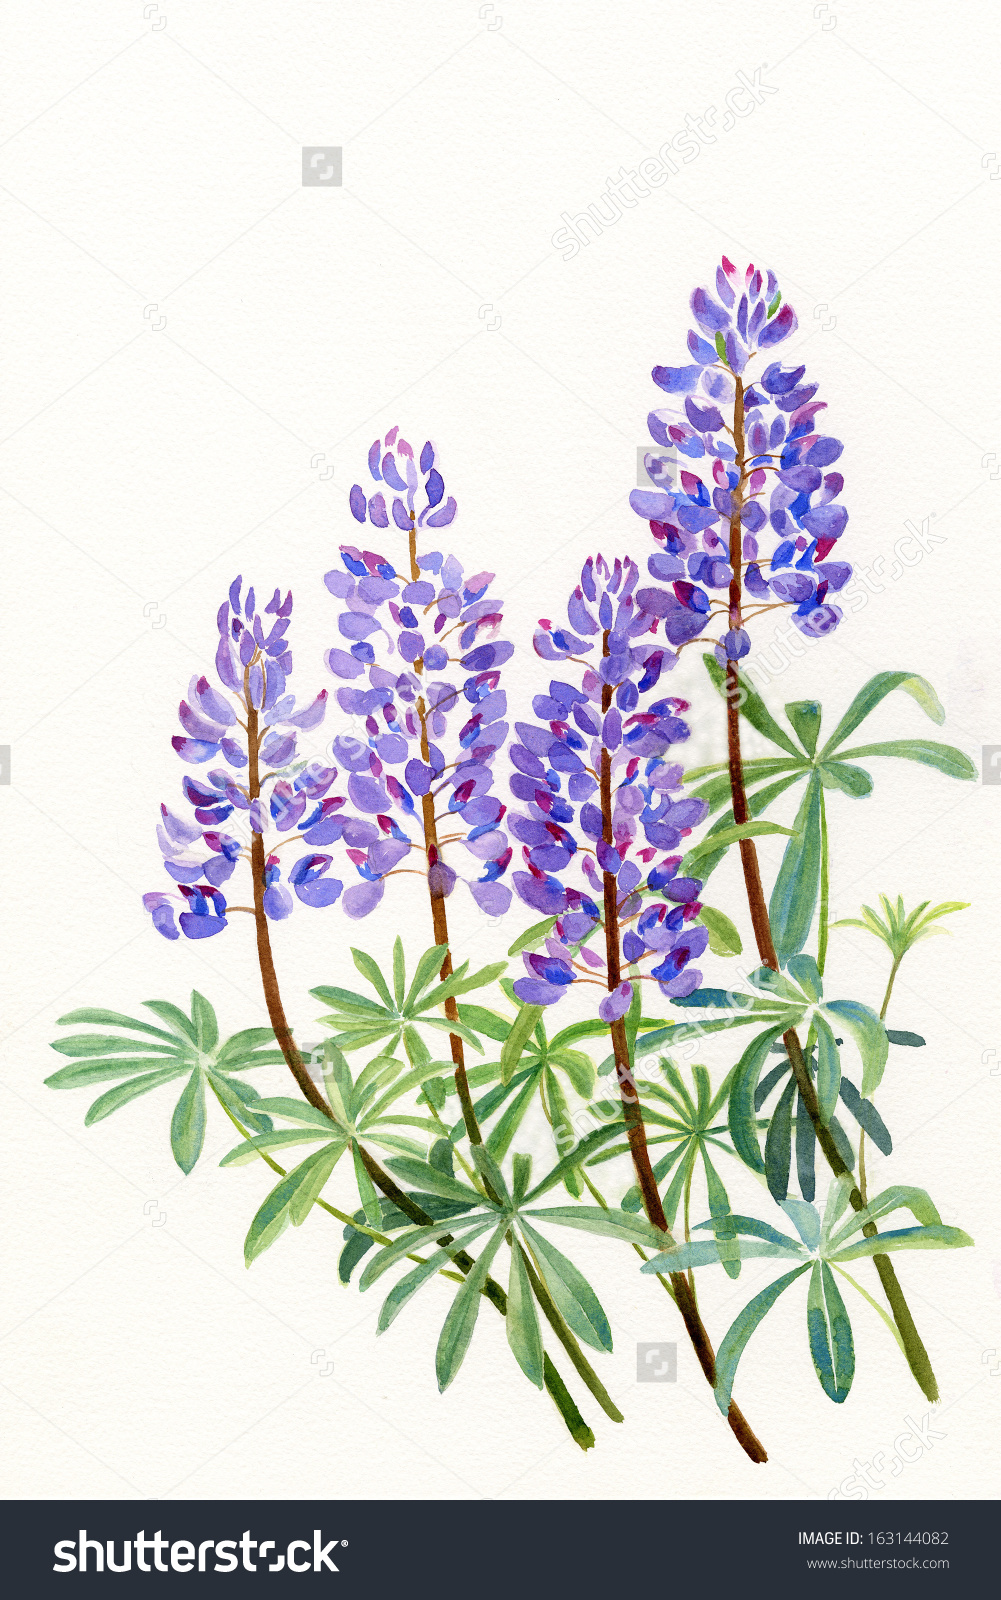 Lupine clipart.